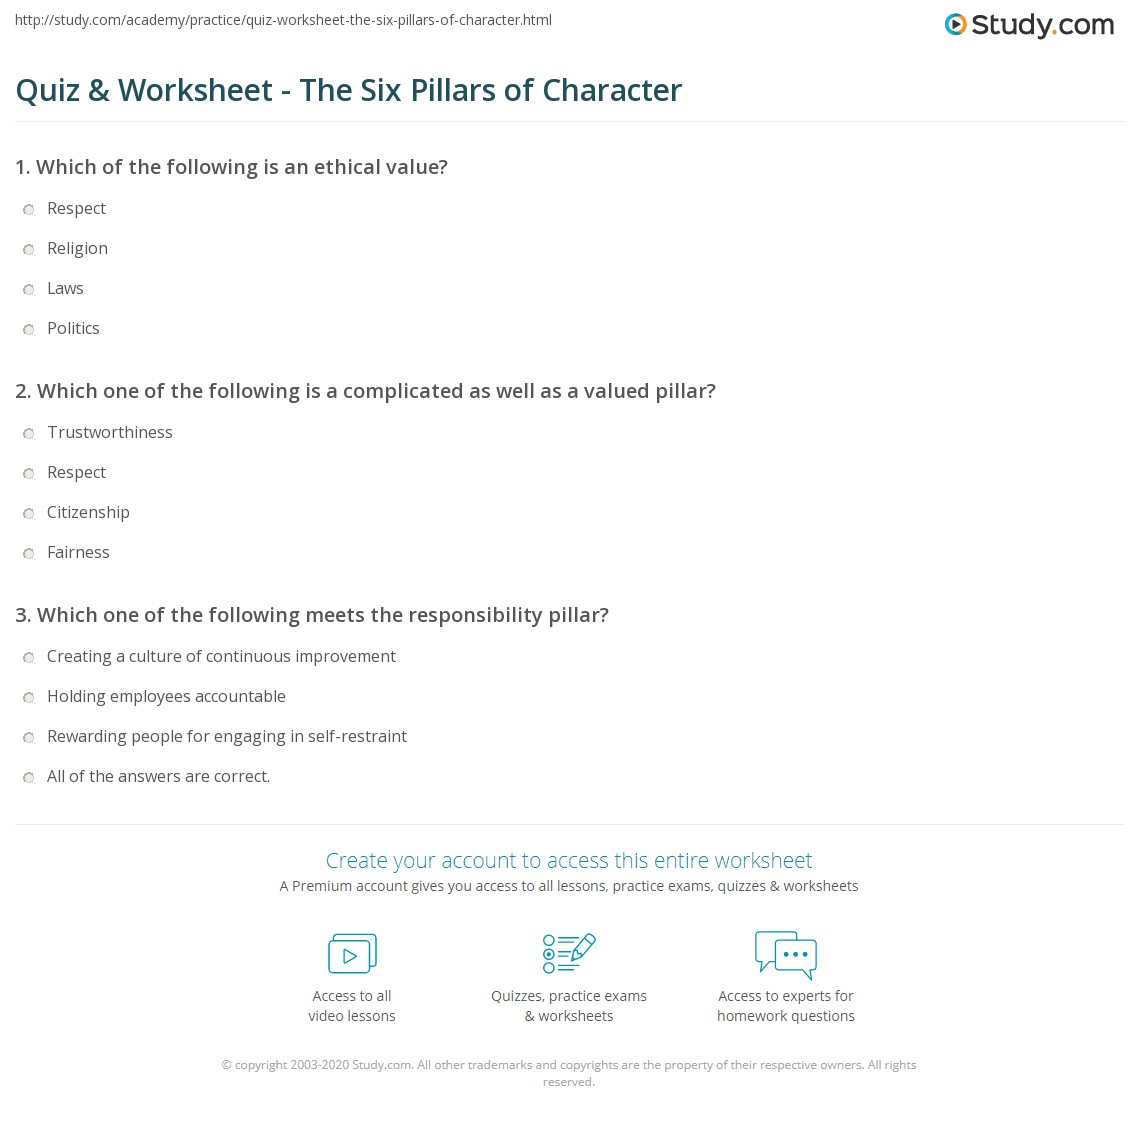 Quiz & Worksheet - The Six Pillars of Character | Study.com